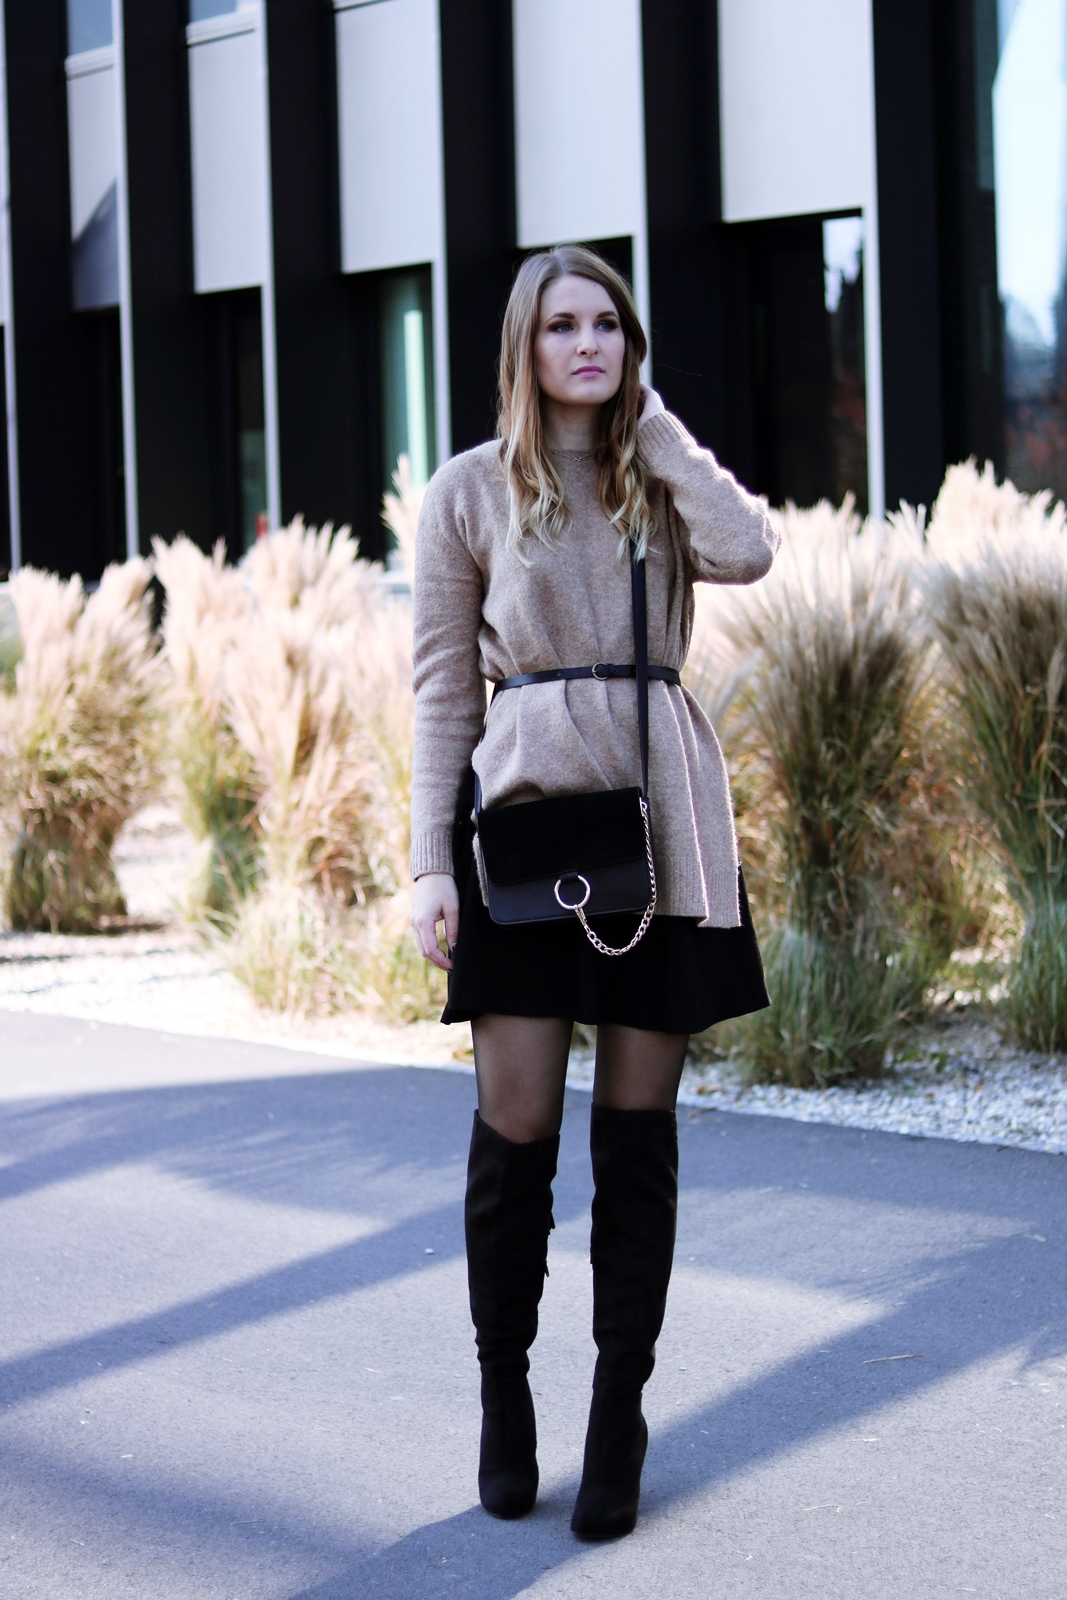 Fashion Lookbook Herbst - Herbst Outfit Inspirationen - Herbst Mode - Herbst Trends - Herbst Outfits - Modetrends - alltagstaugliche Herbstmode - herbstliche Outfit Kombination - Herbst Style - Fashionladyloves by Tamara Wagner - Fashion Blog - Mode Blog aus Graz Österreich